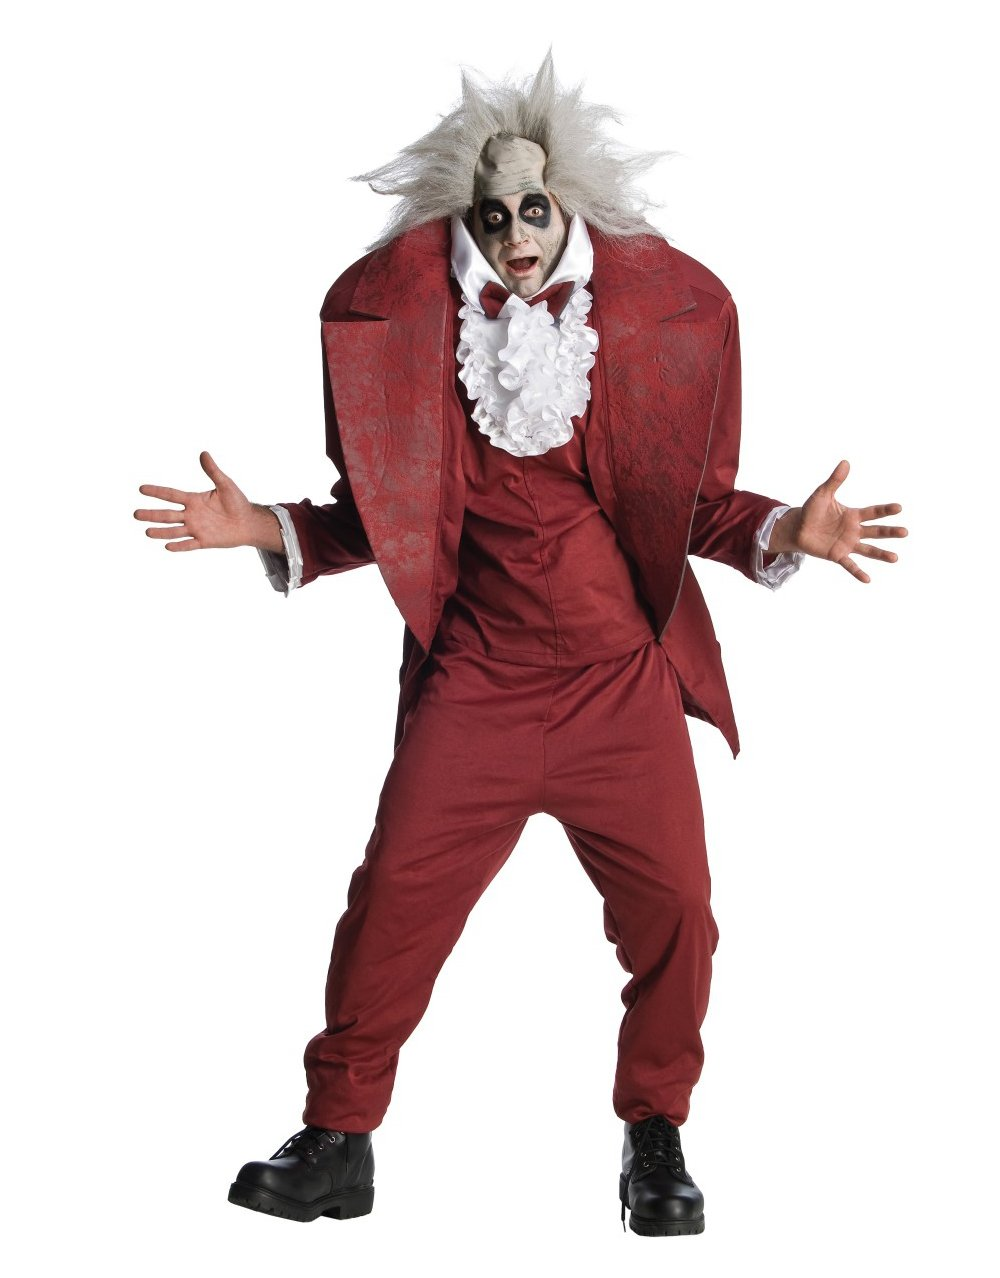 Beetlejuice Costume, Mens Beetlejuice Shrunken Head Costume. Includes the wig!